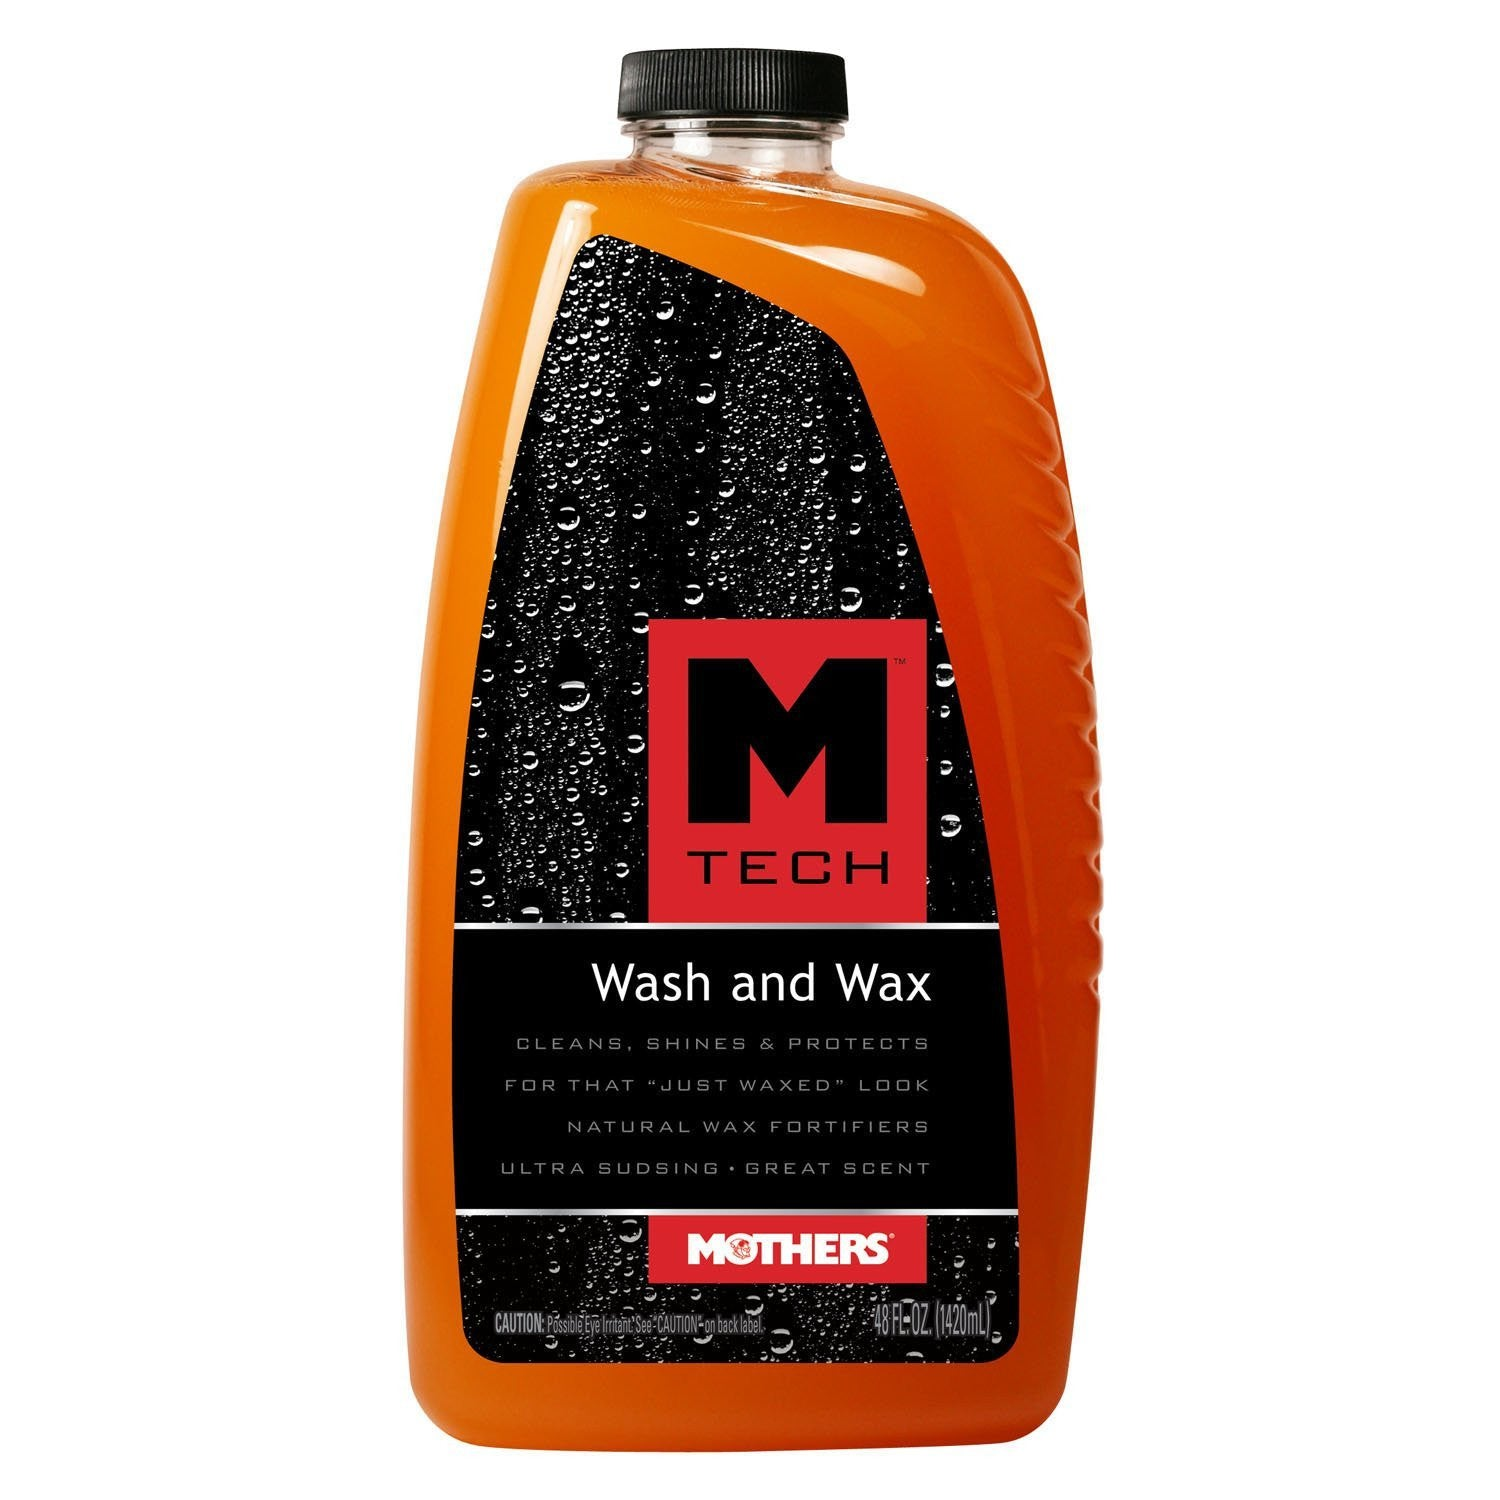 MOTHERS M-Tech Wash and Wax 48 OZ